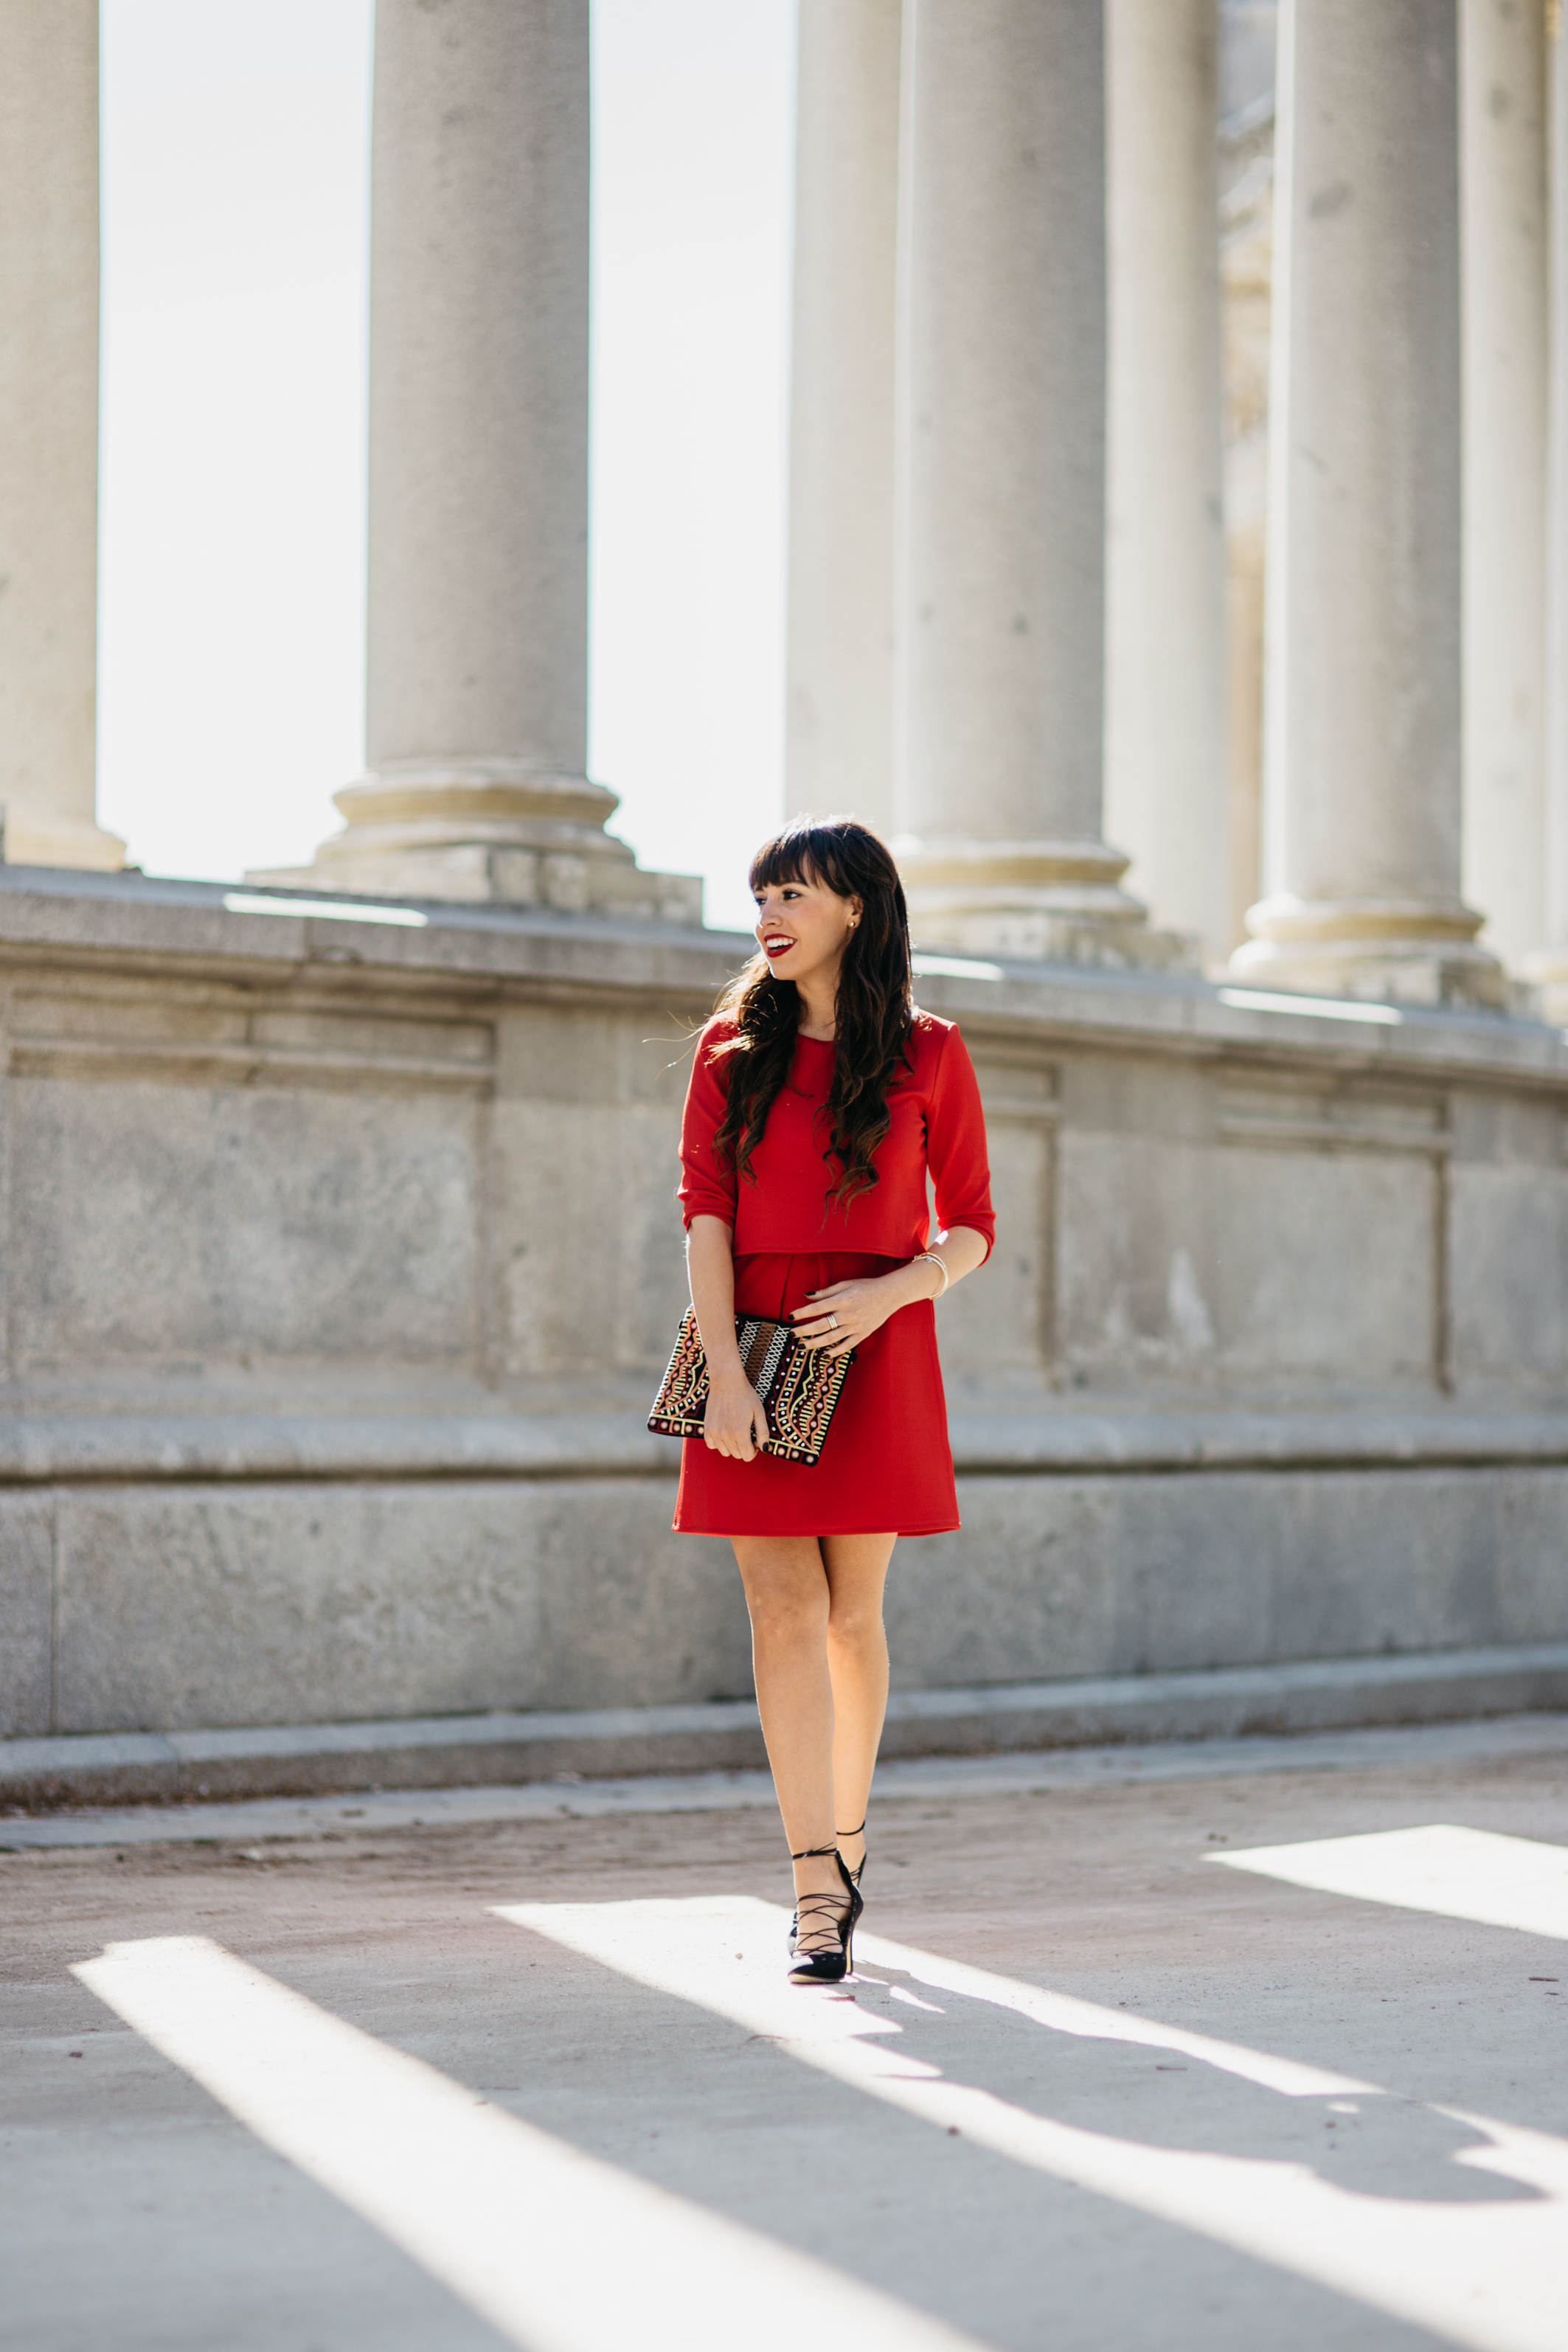 Street style, ceremony outfit, red dress, lace up heels, ethnic bag, We say oui look